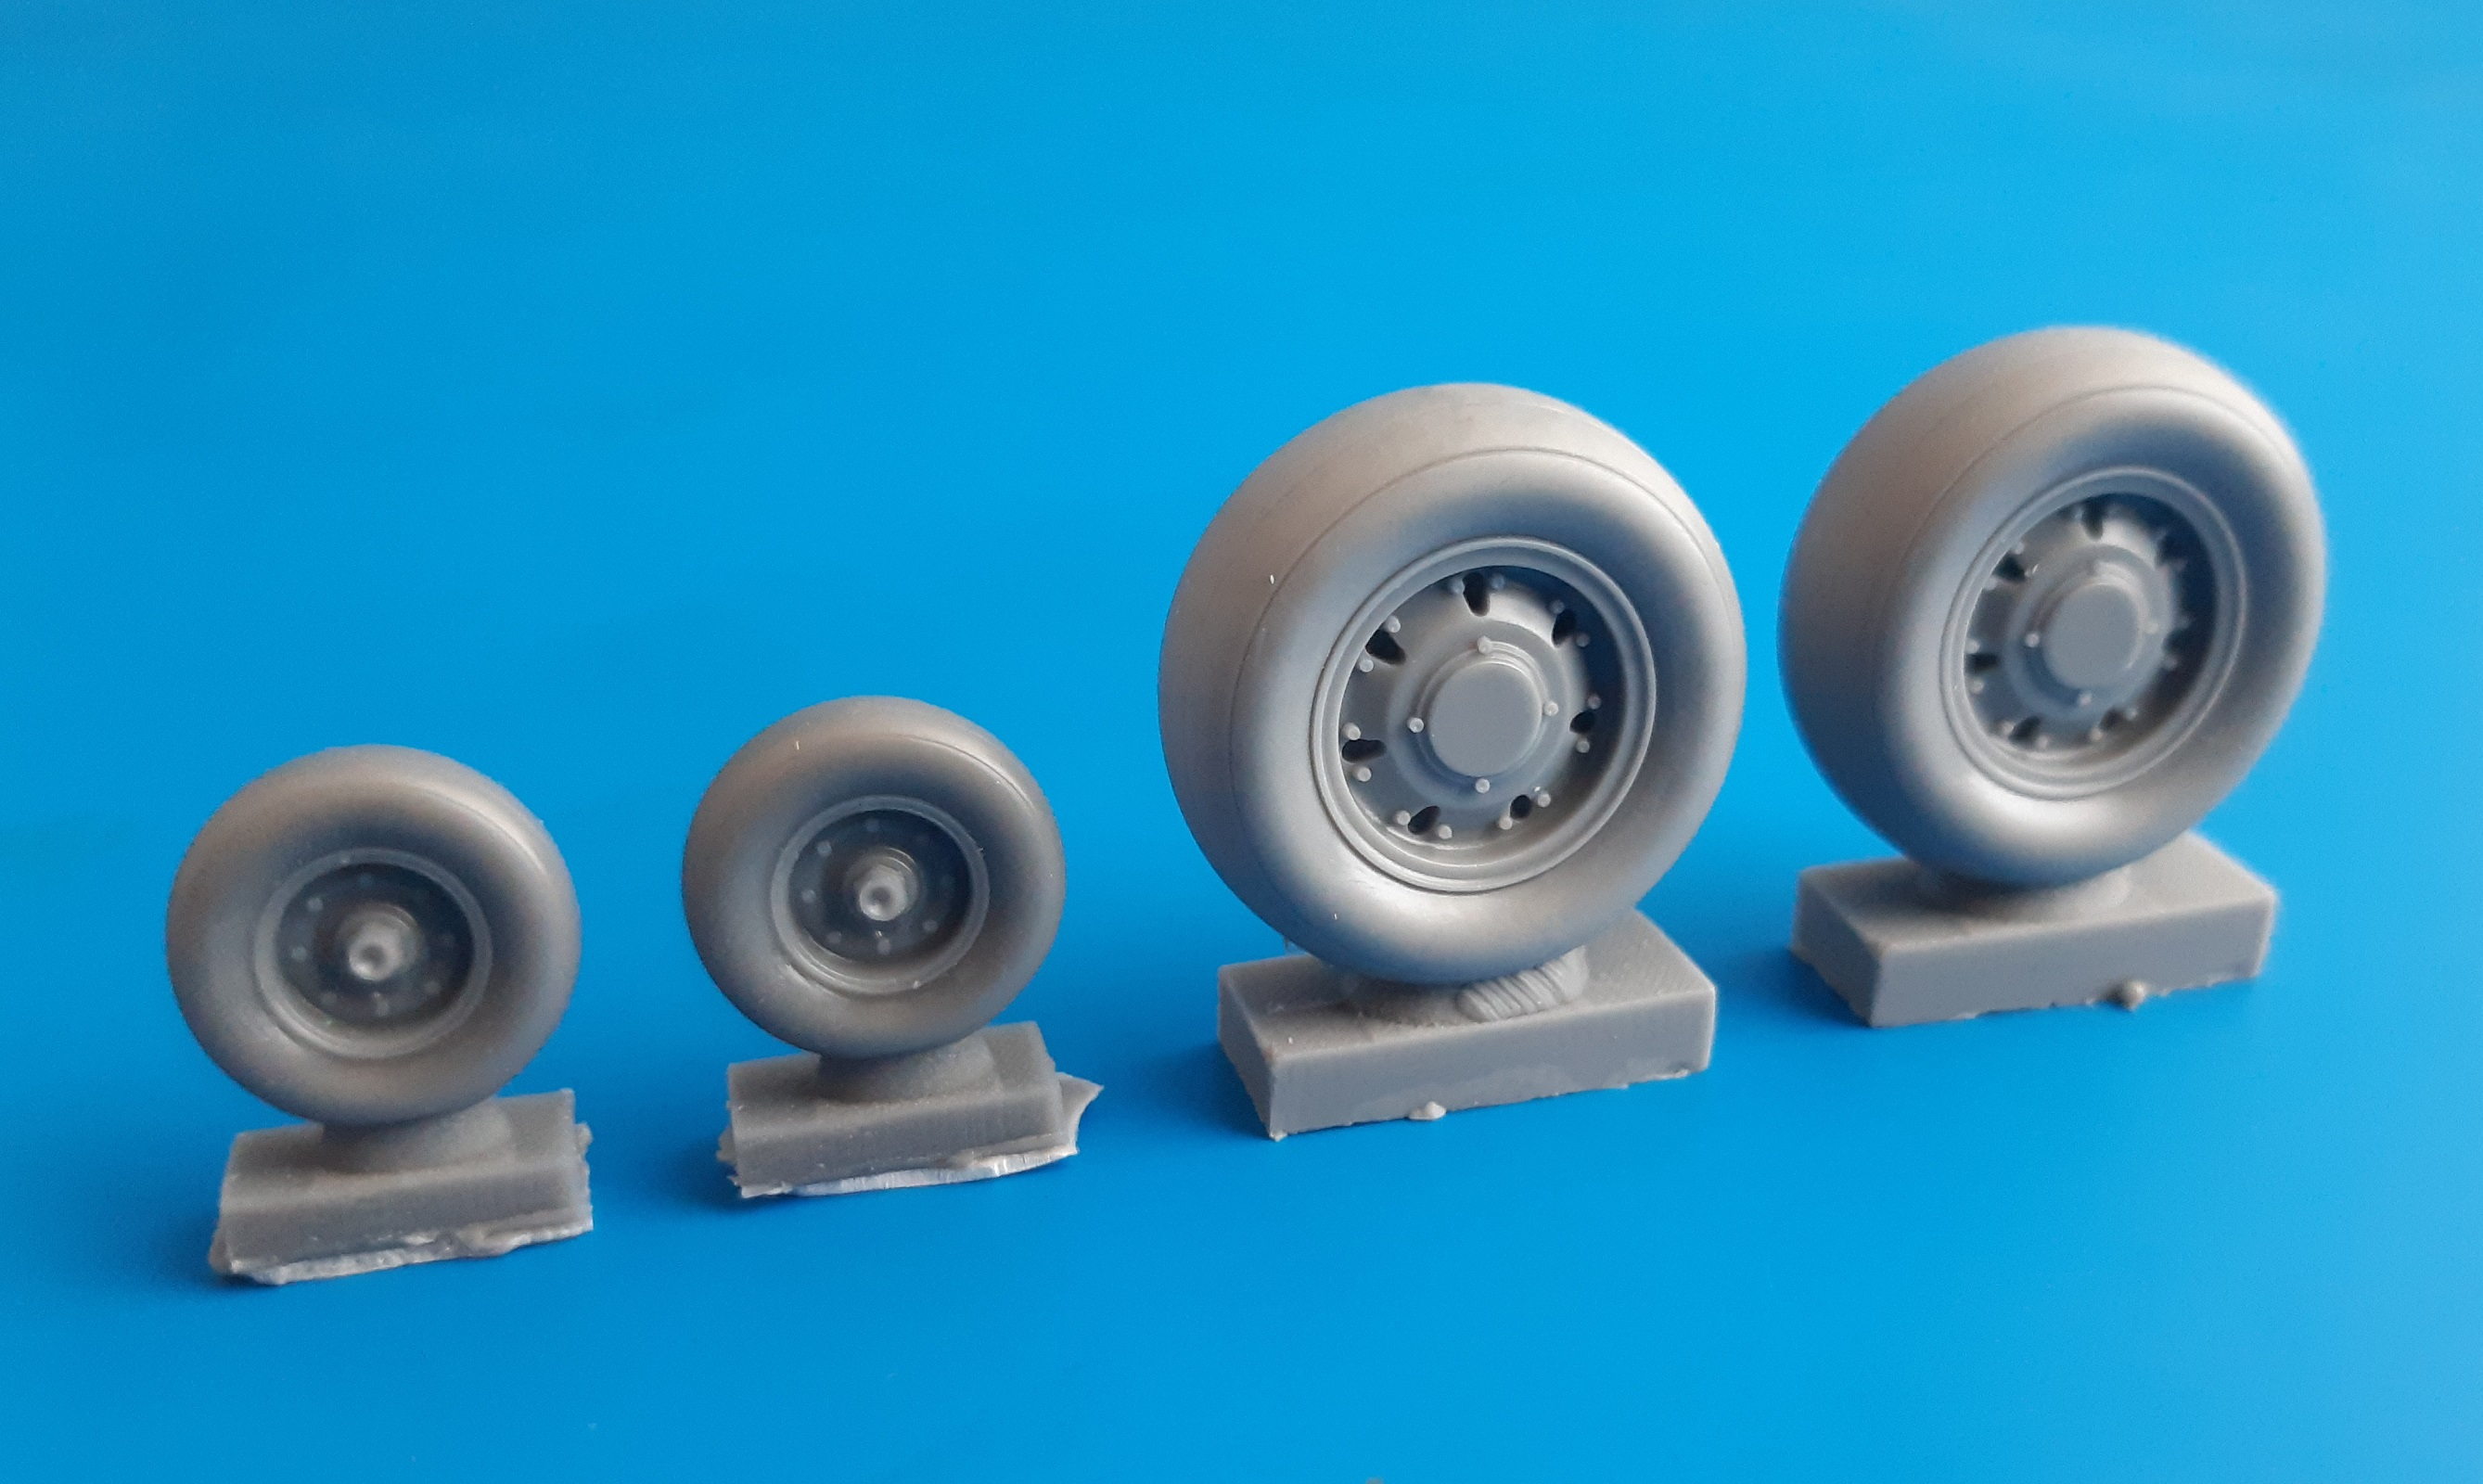 32095 Panavia Tornado Weighted Wheels (REVELL)